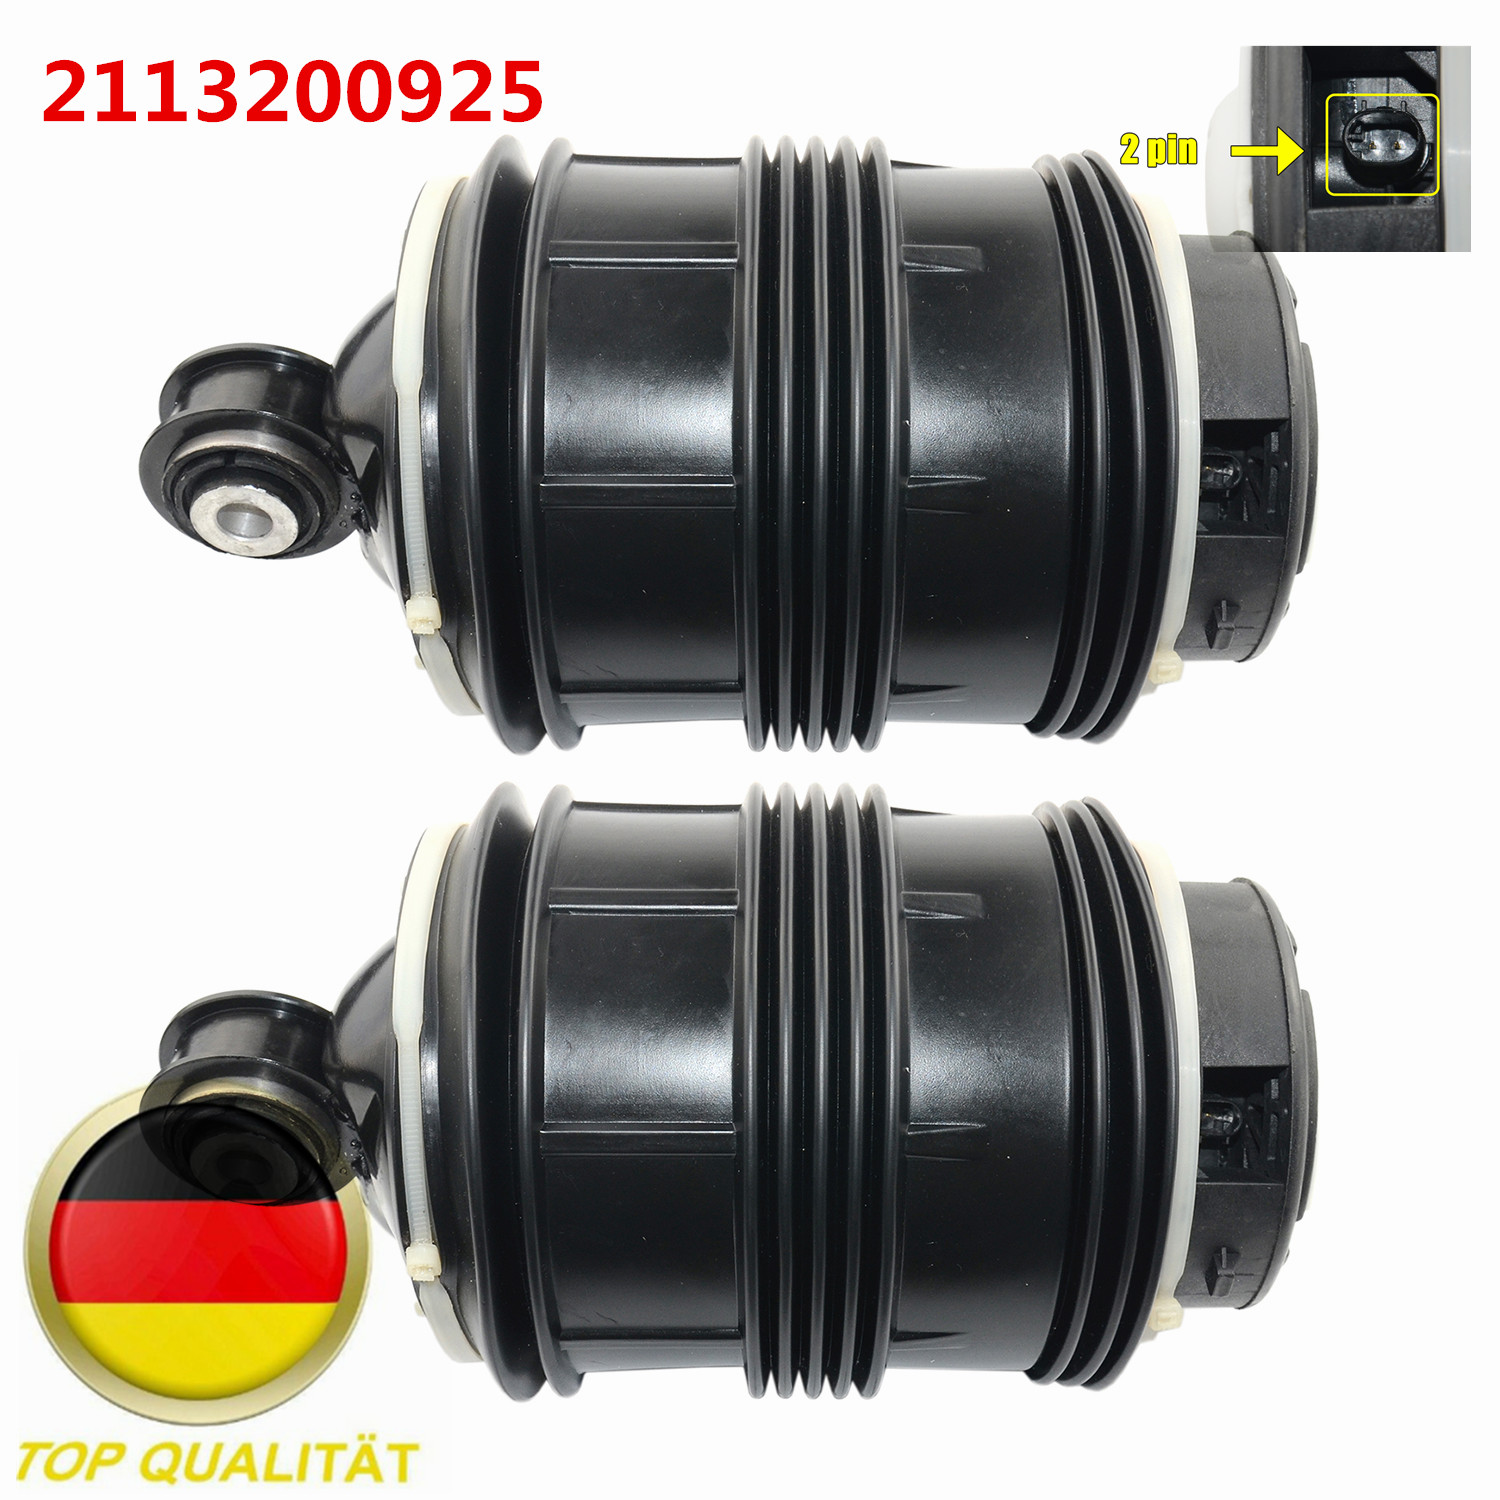 AP02 Pair 2pins Rear Air Suspension Spring A2113200925 For <font><b>Mercedes</b></font> E-Class W211 S211 E200 E220 E350 E500 2113200925 image